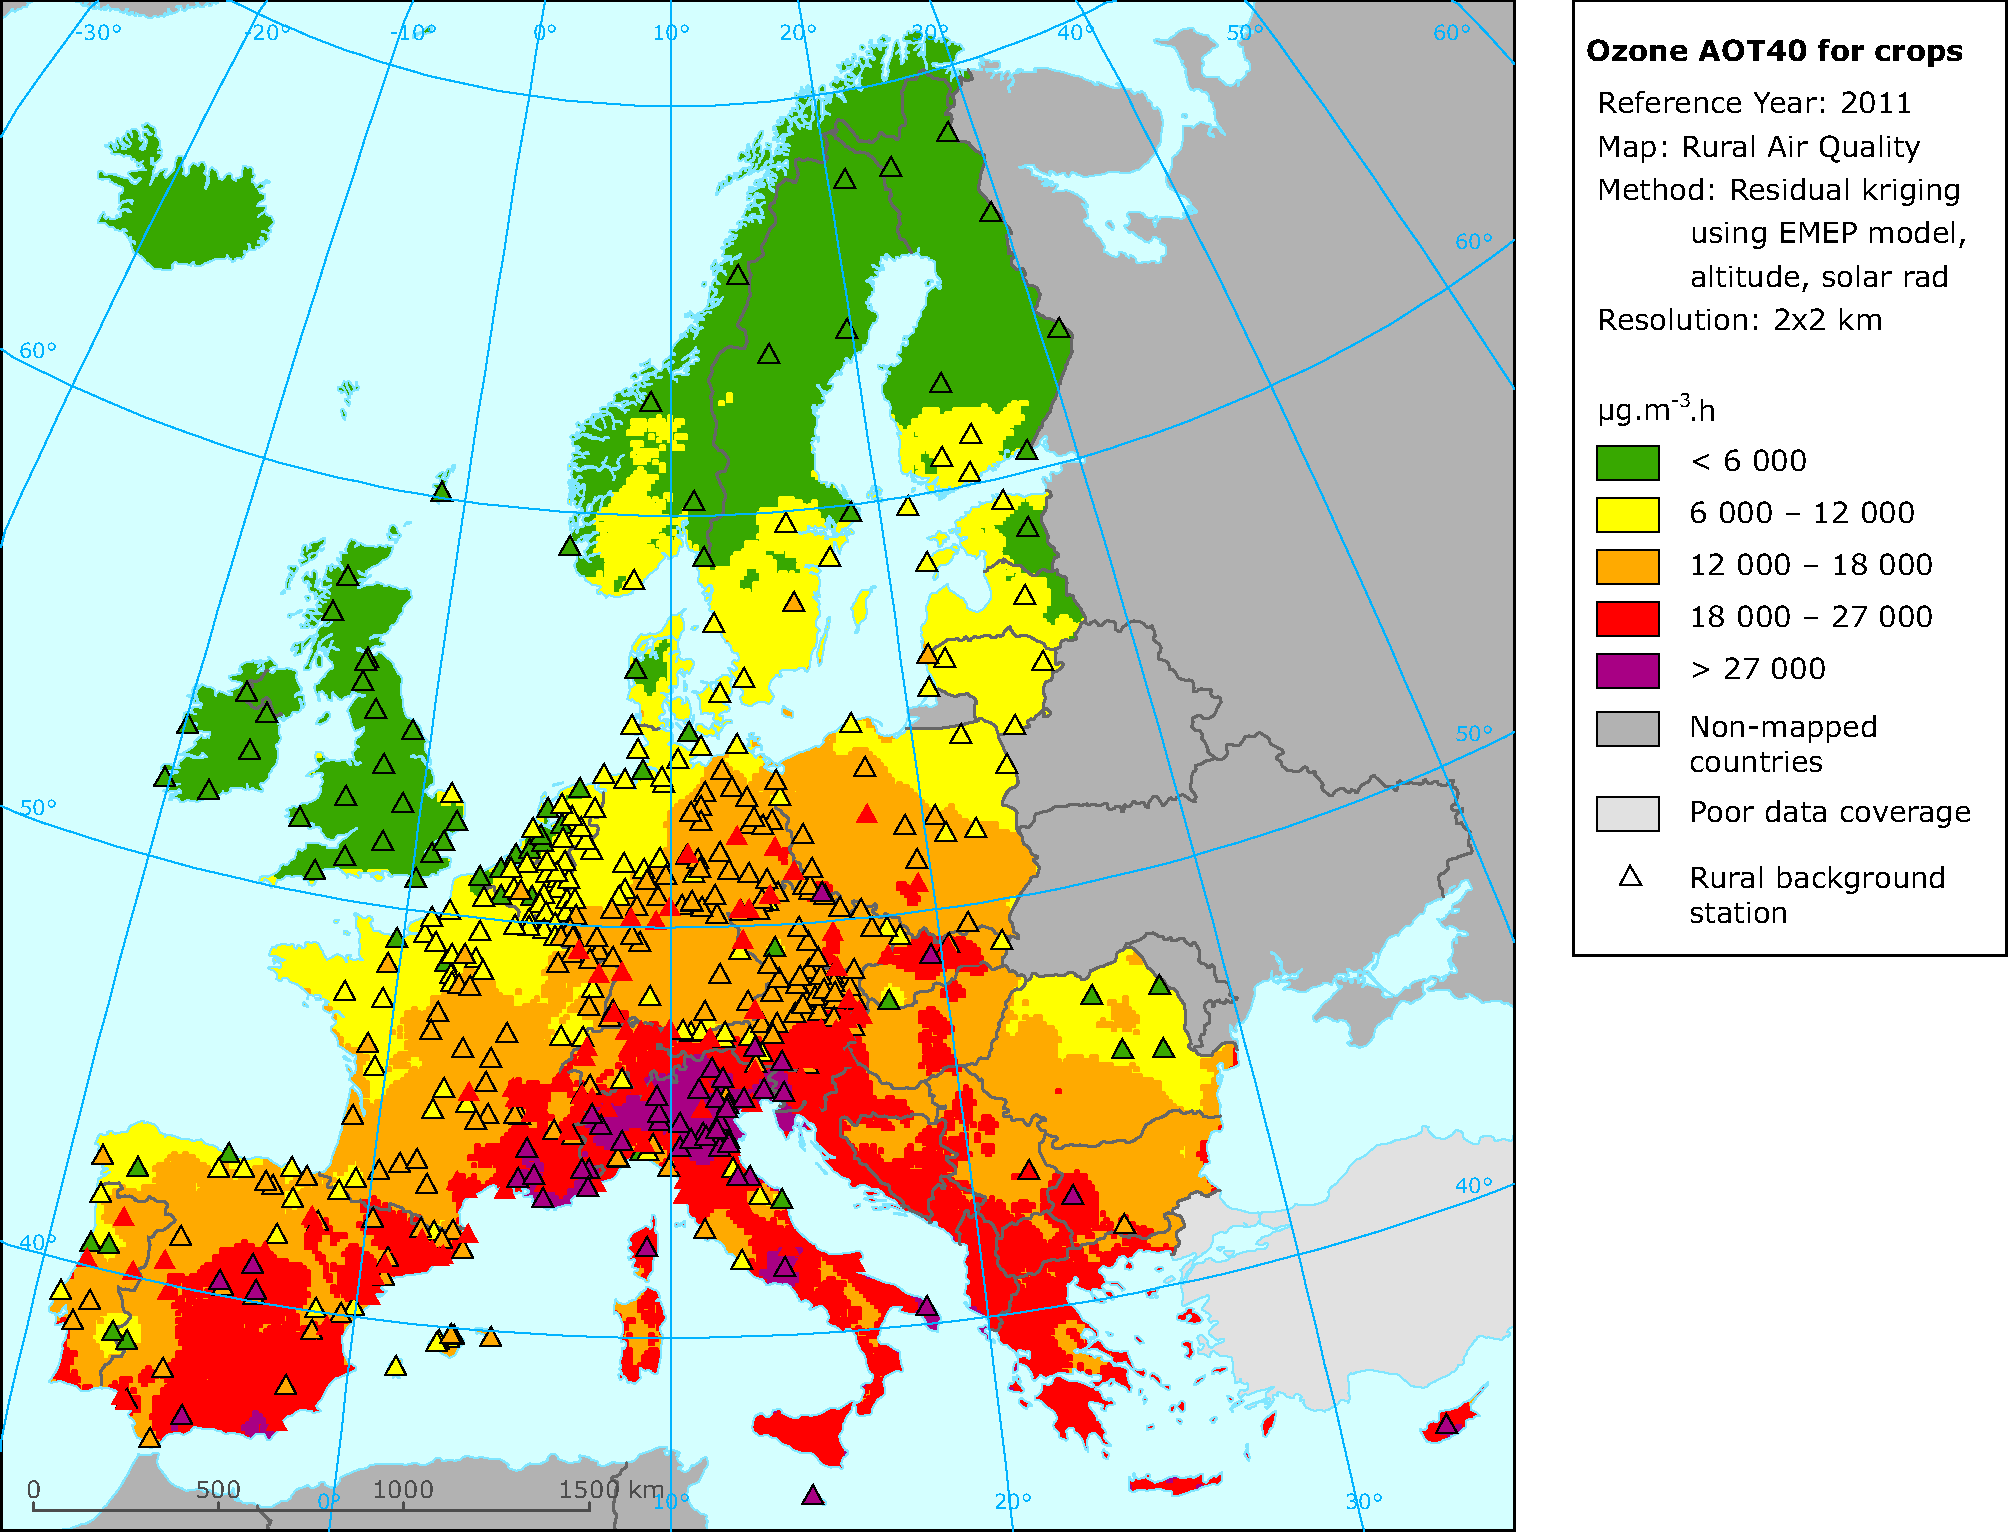 Rural concentration map of the ozone indicator AOT40 for crops in 2011